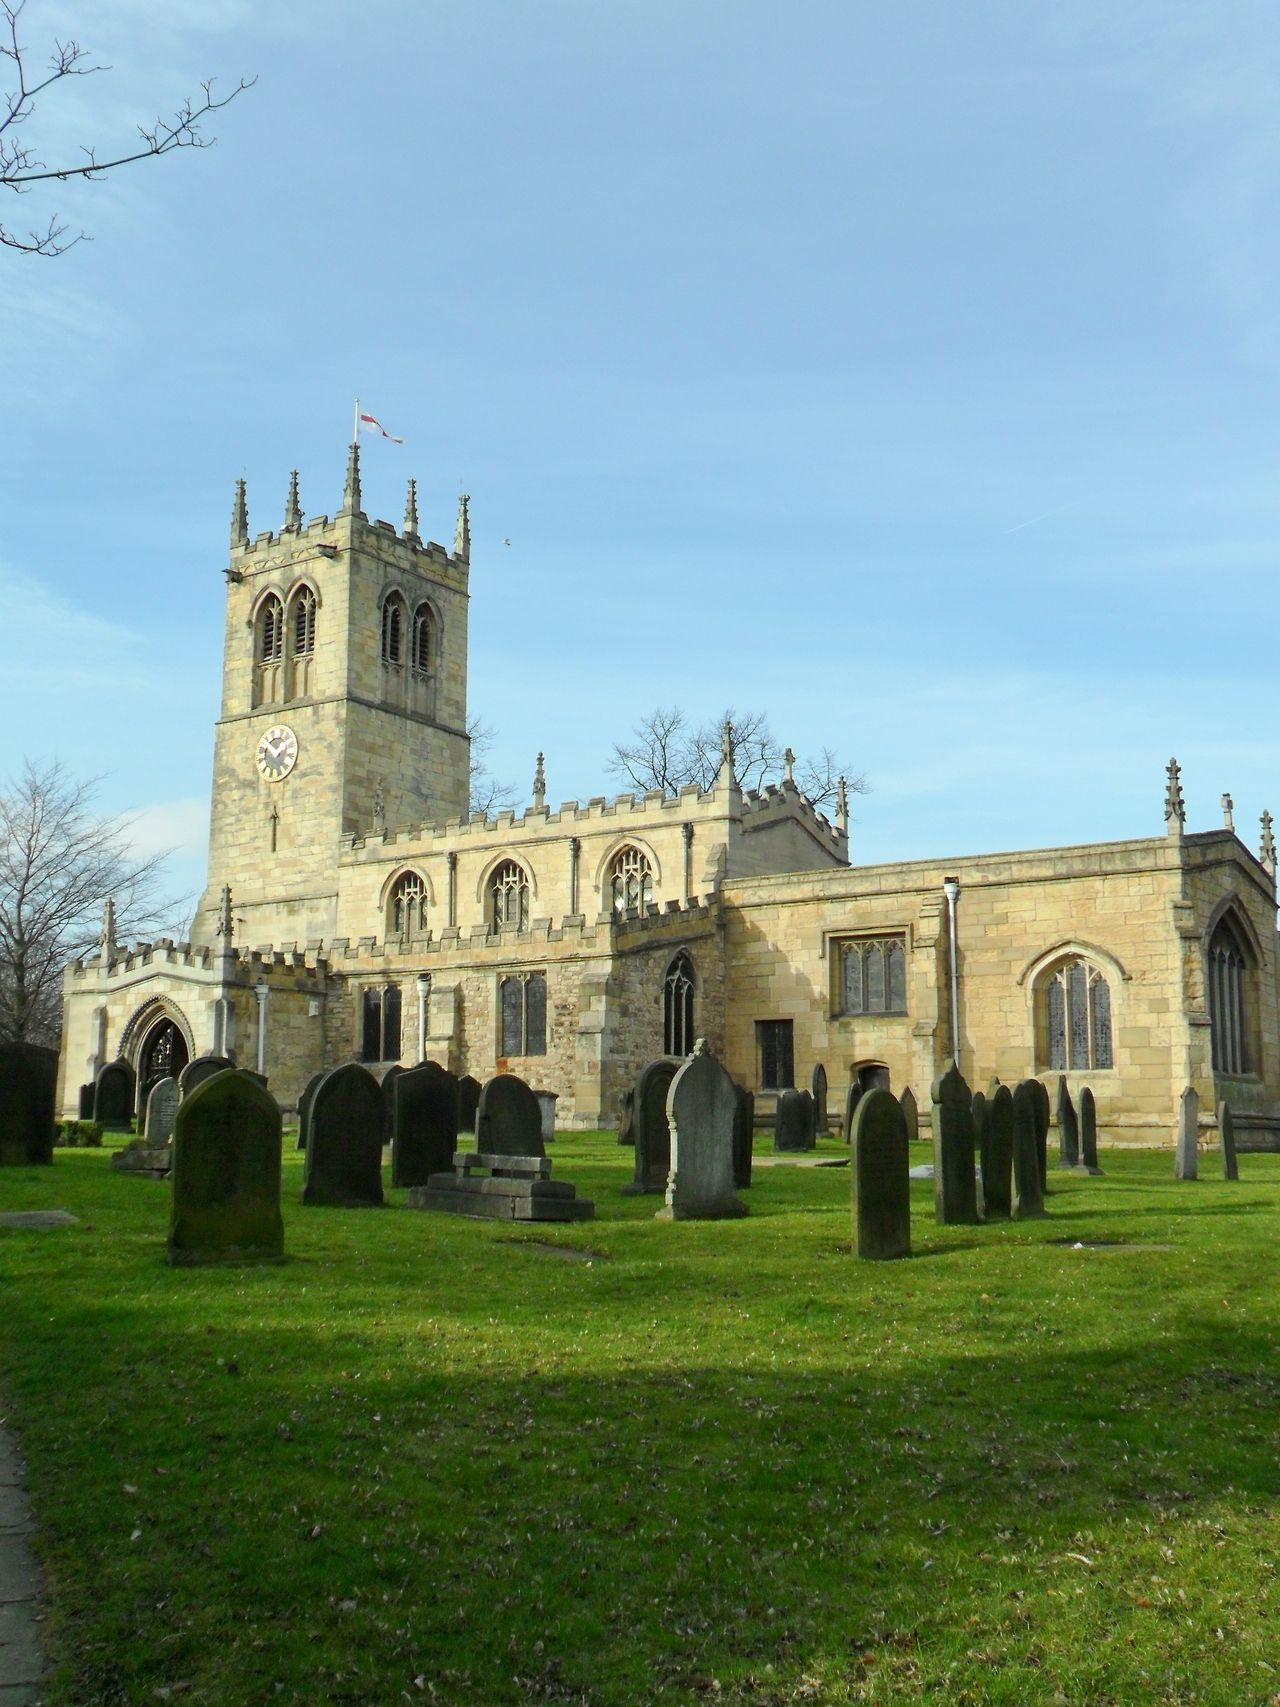 St Peters Church, Conisbrough, the oldest building in